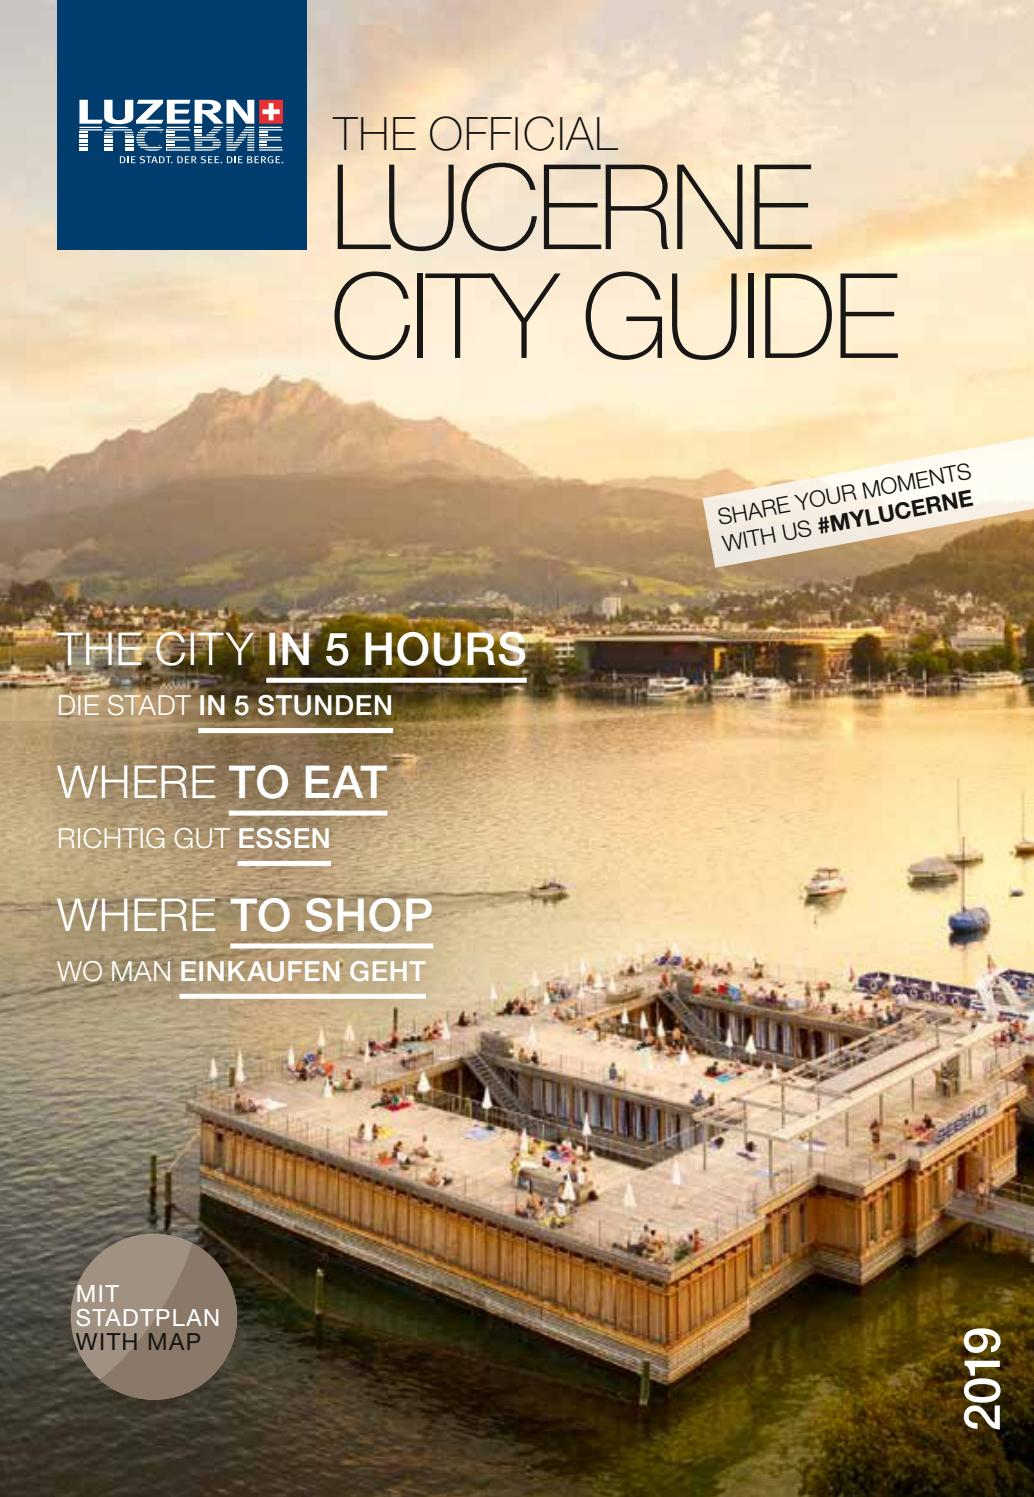 The Official Lucerne City Guide Summer 2019 By Ba Media Gmbh